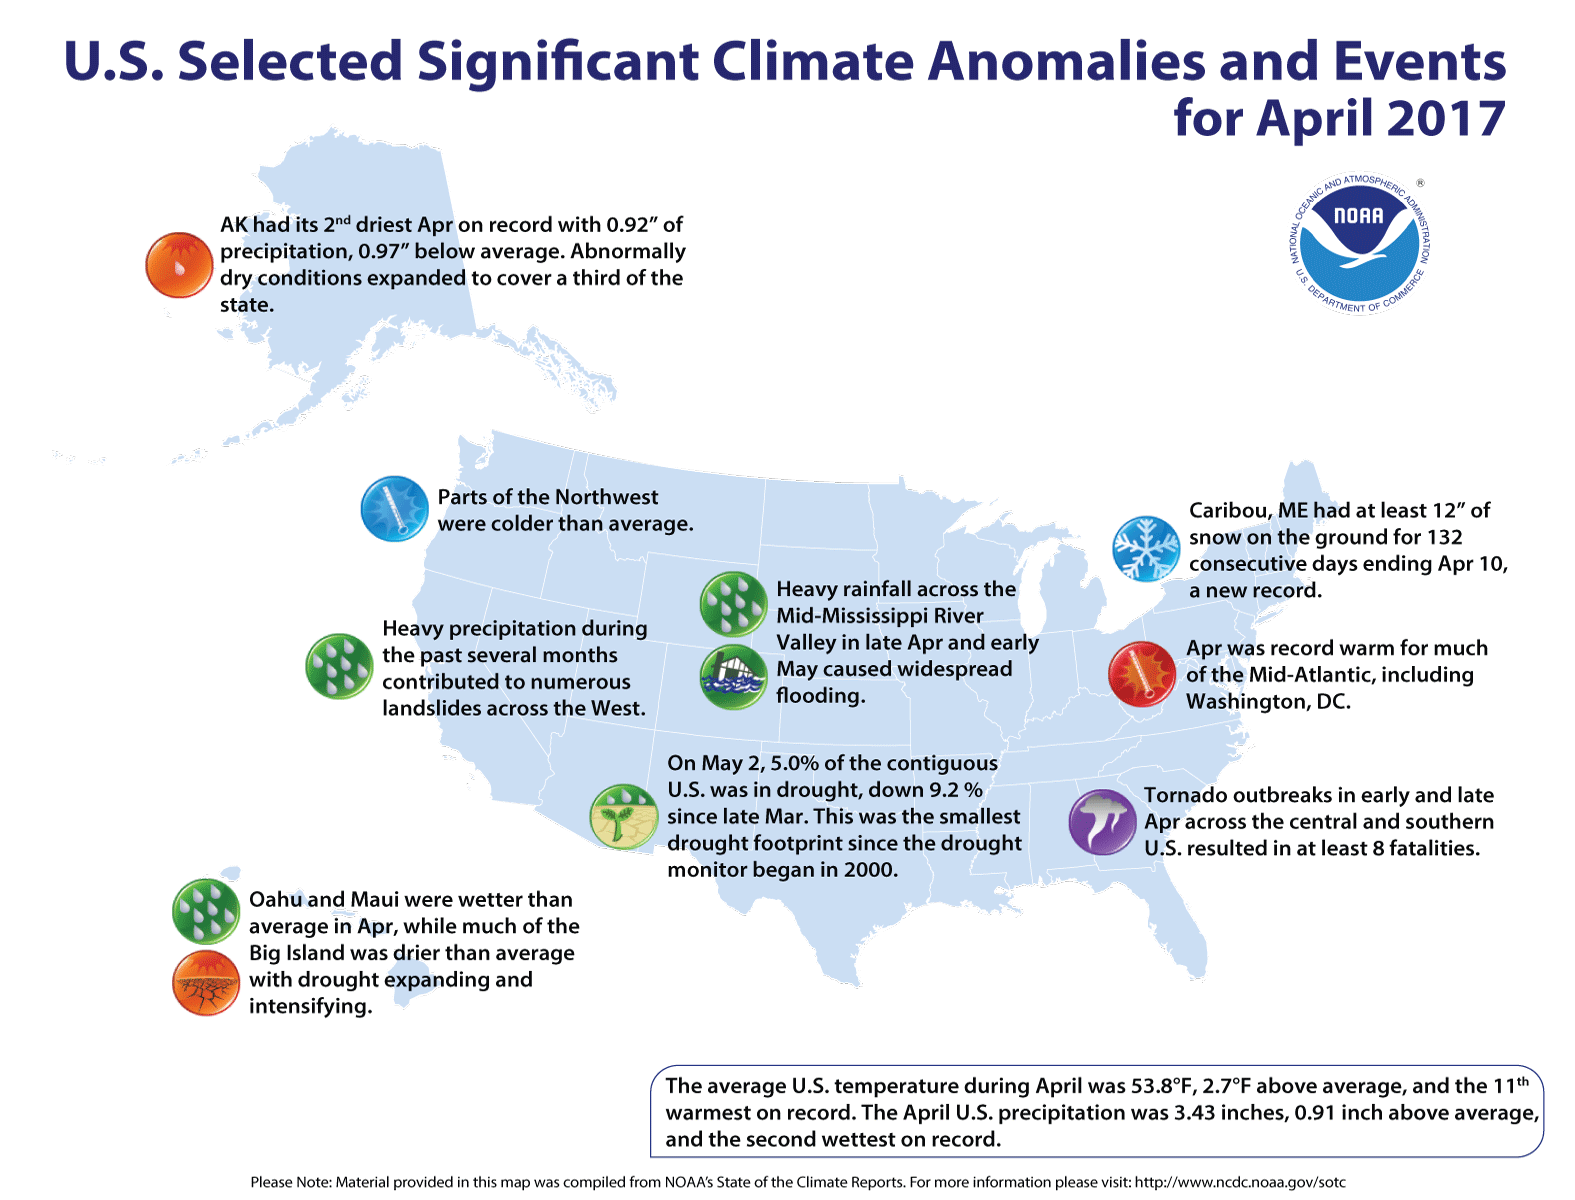 Map of U.S. selected significant climate anomalies and events for April 2017